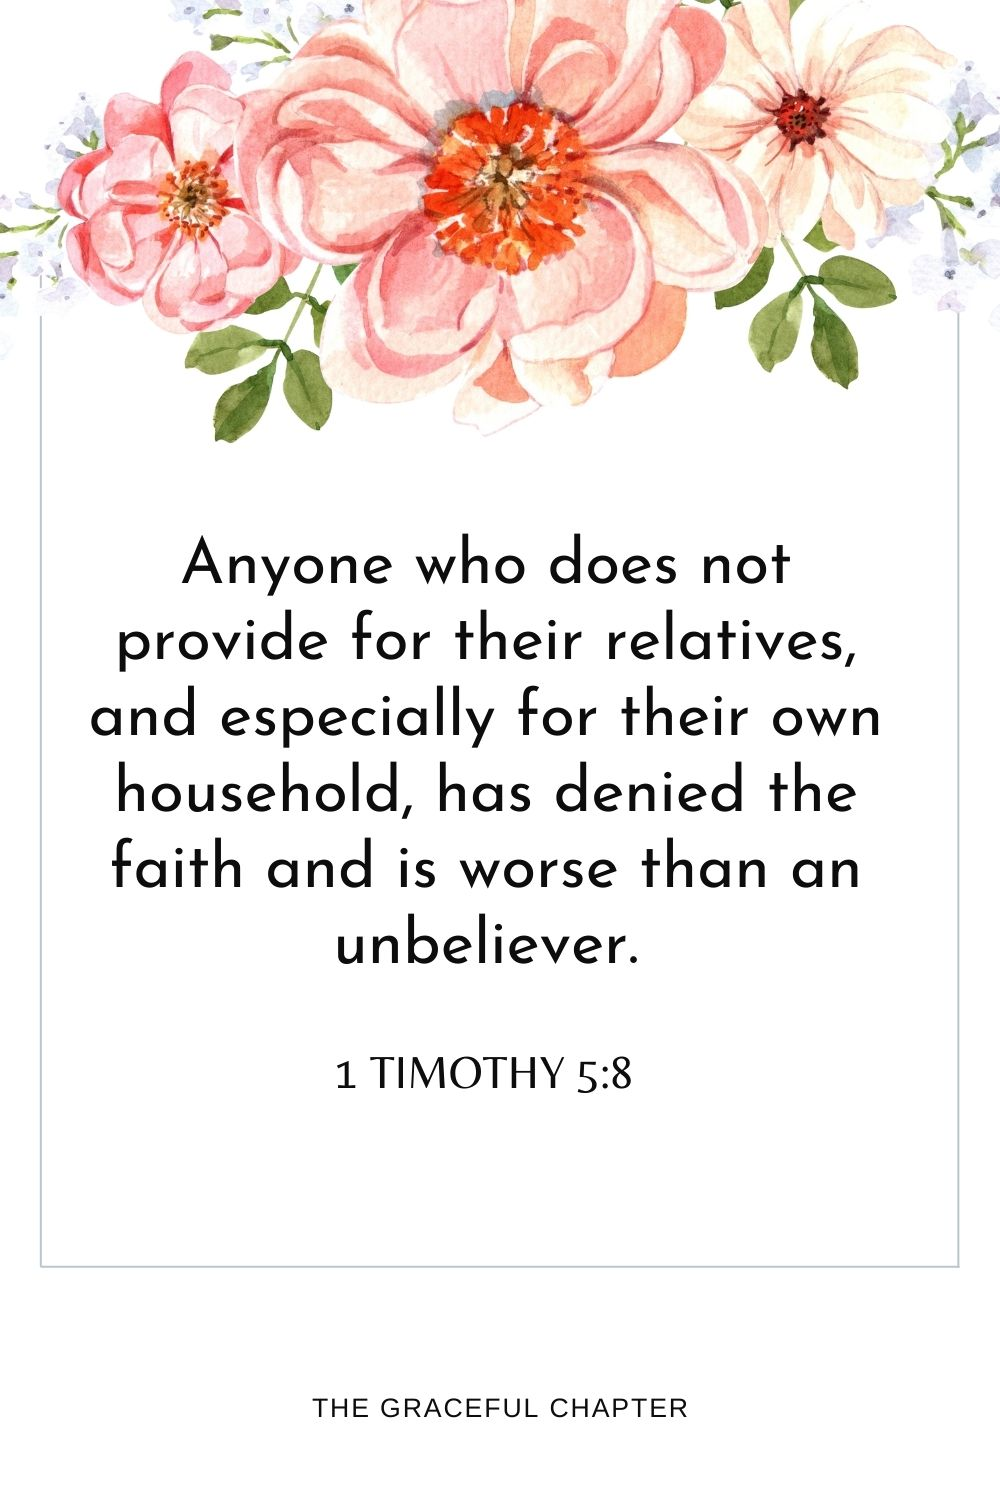 Anyone who does not provide for their relatives, and especially for their own household, has deniedthe faith and is worse than an unbeliever. 1 Timothy 5:8